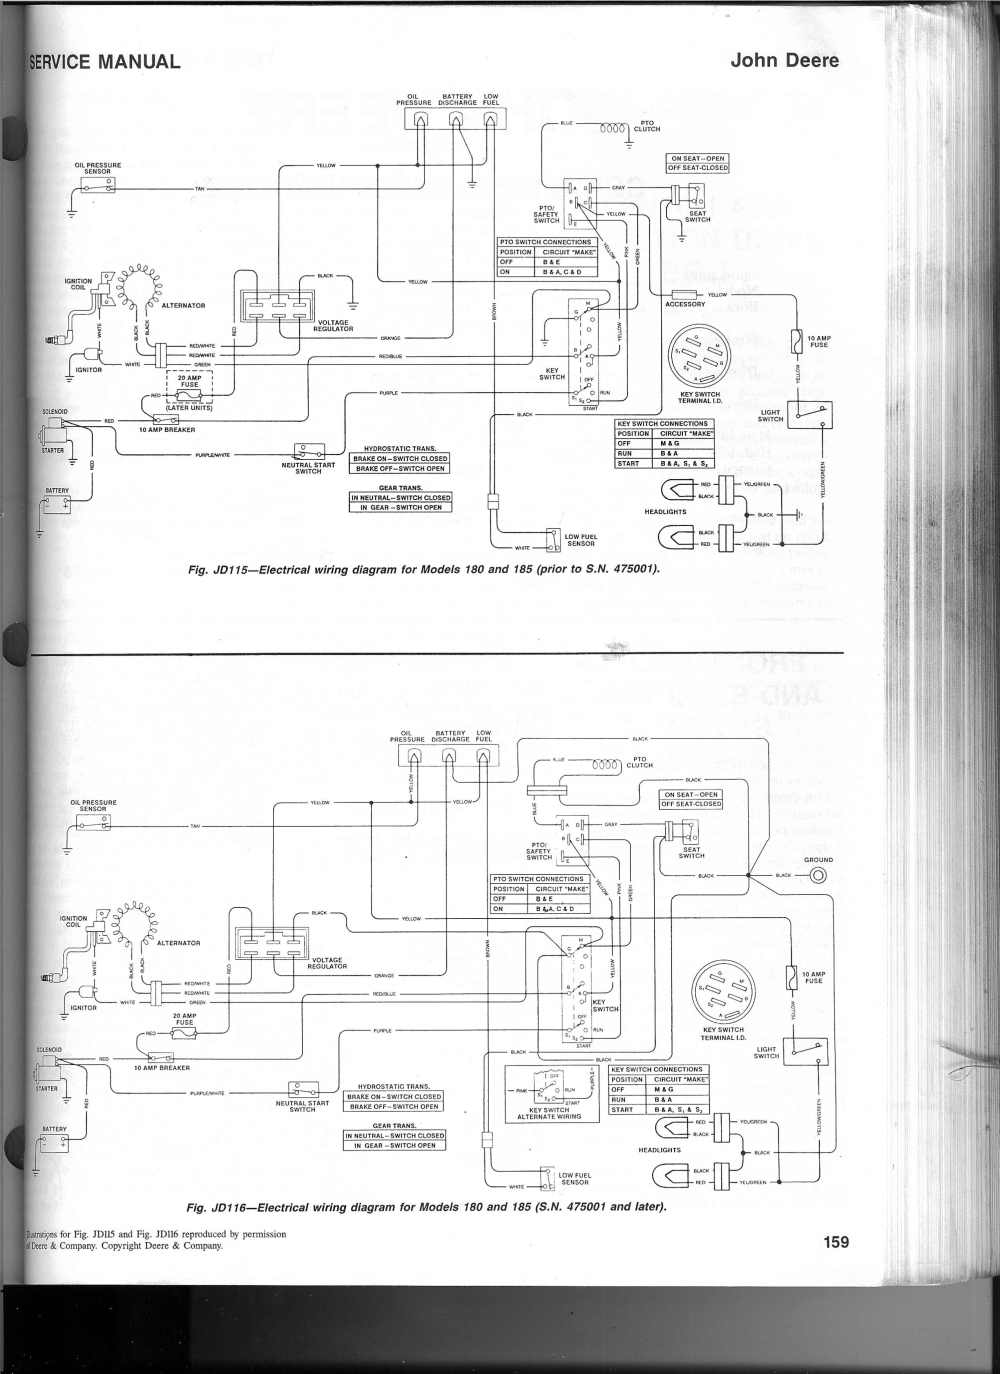 medium resolution of i dug up an electrical schematic for the 180 185 click to load the image in a window by itself then click scroll to zoom in